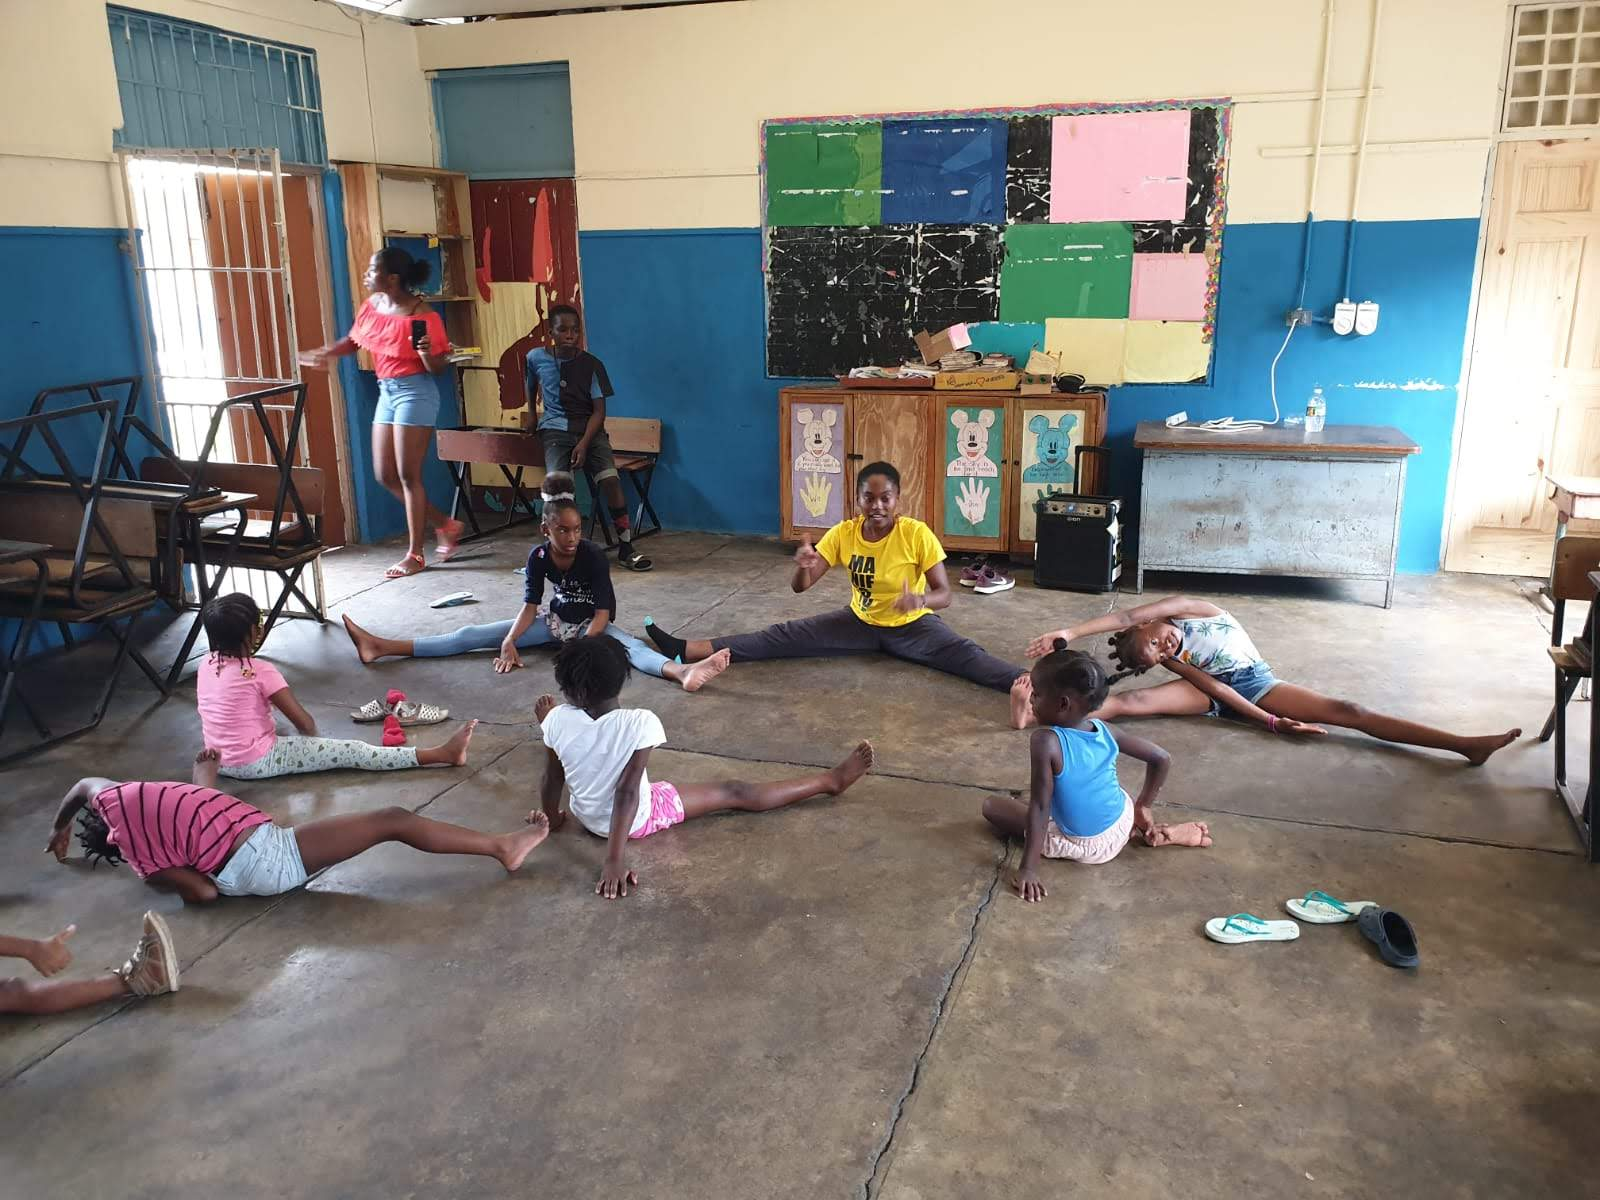 Stretching exercises - August Town Primary School